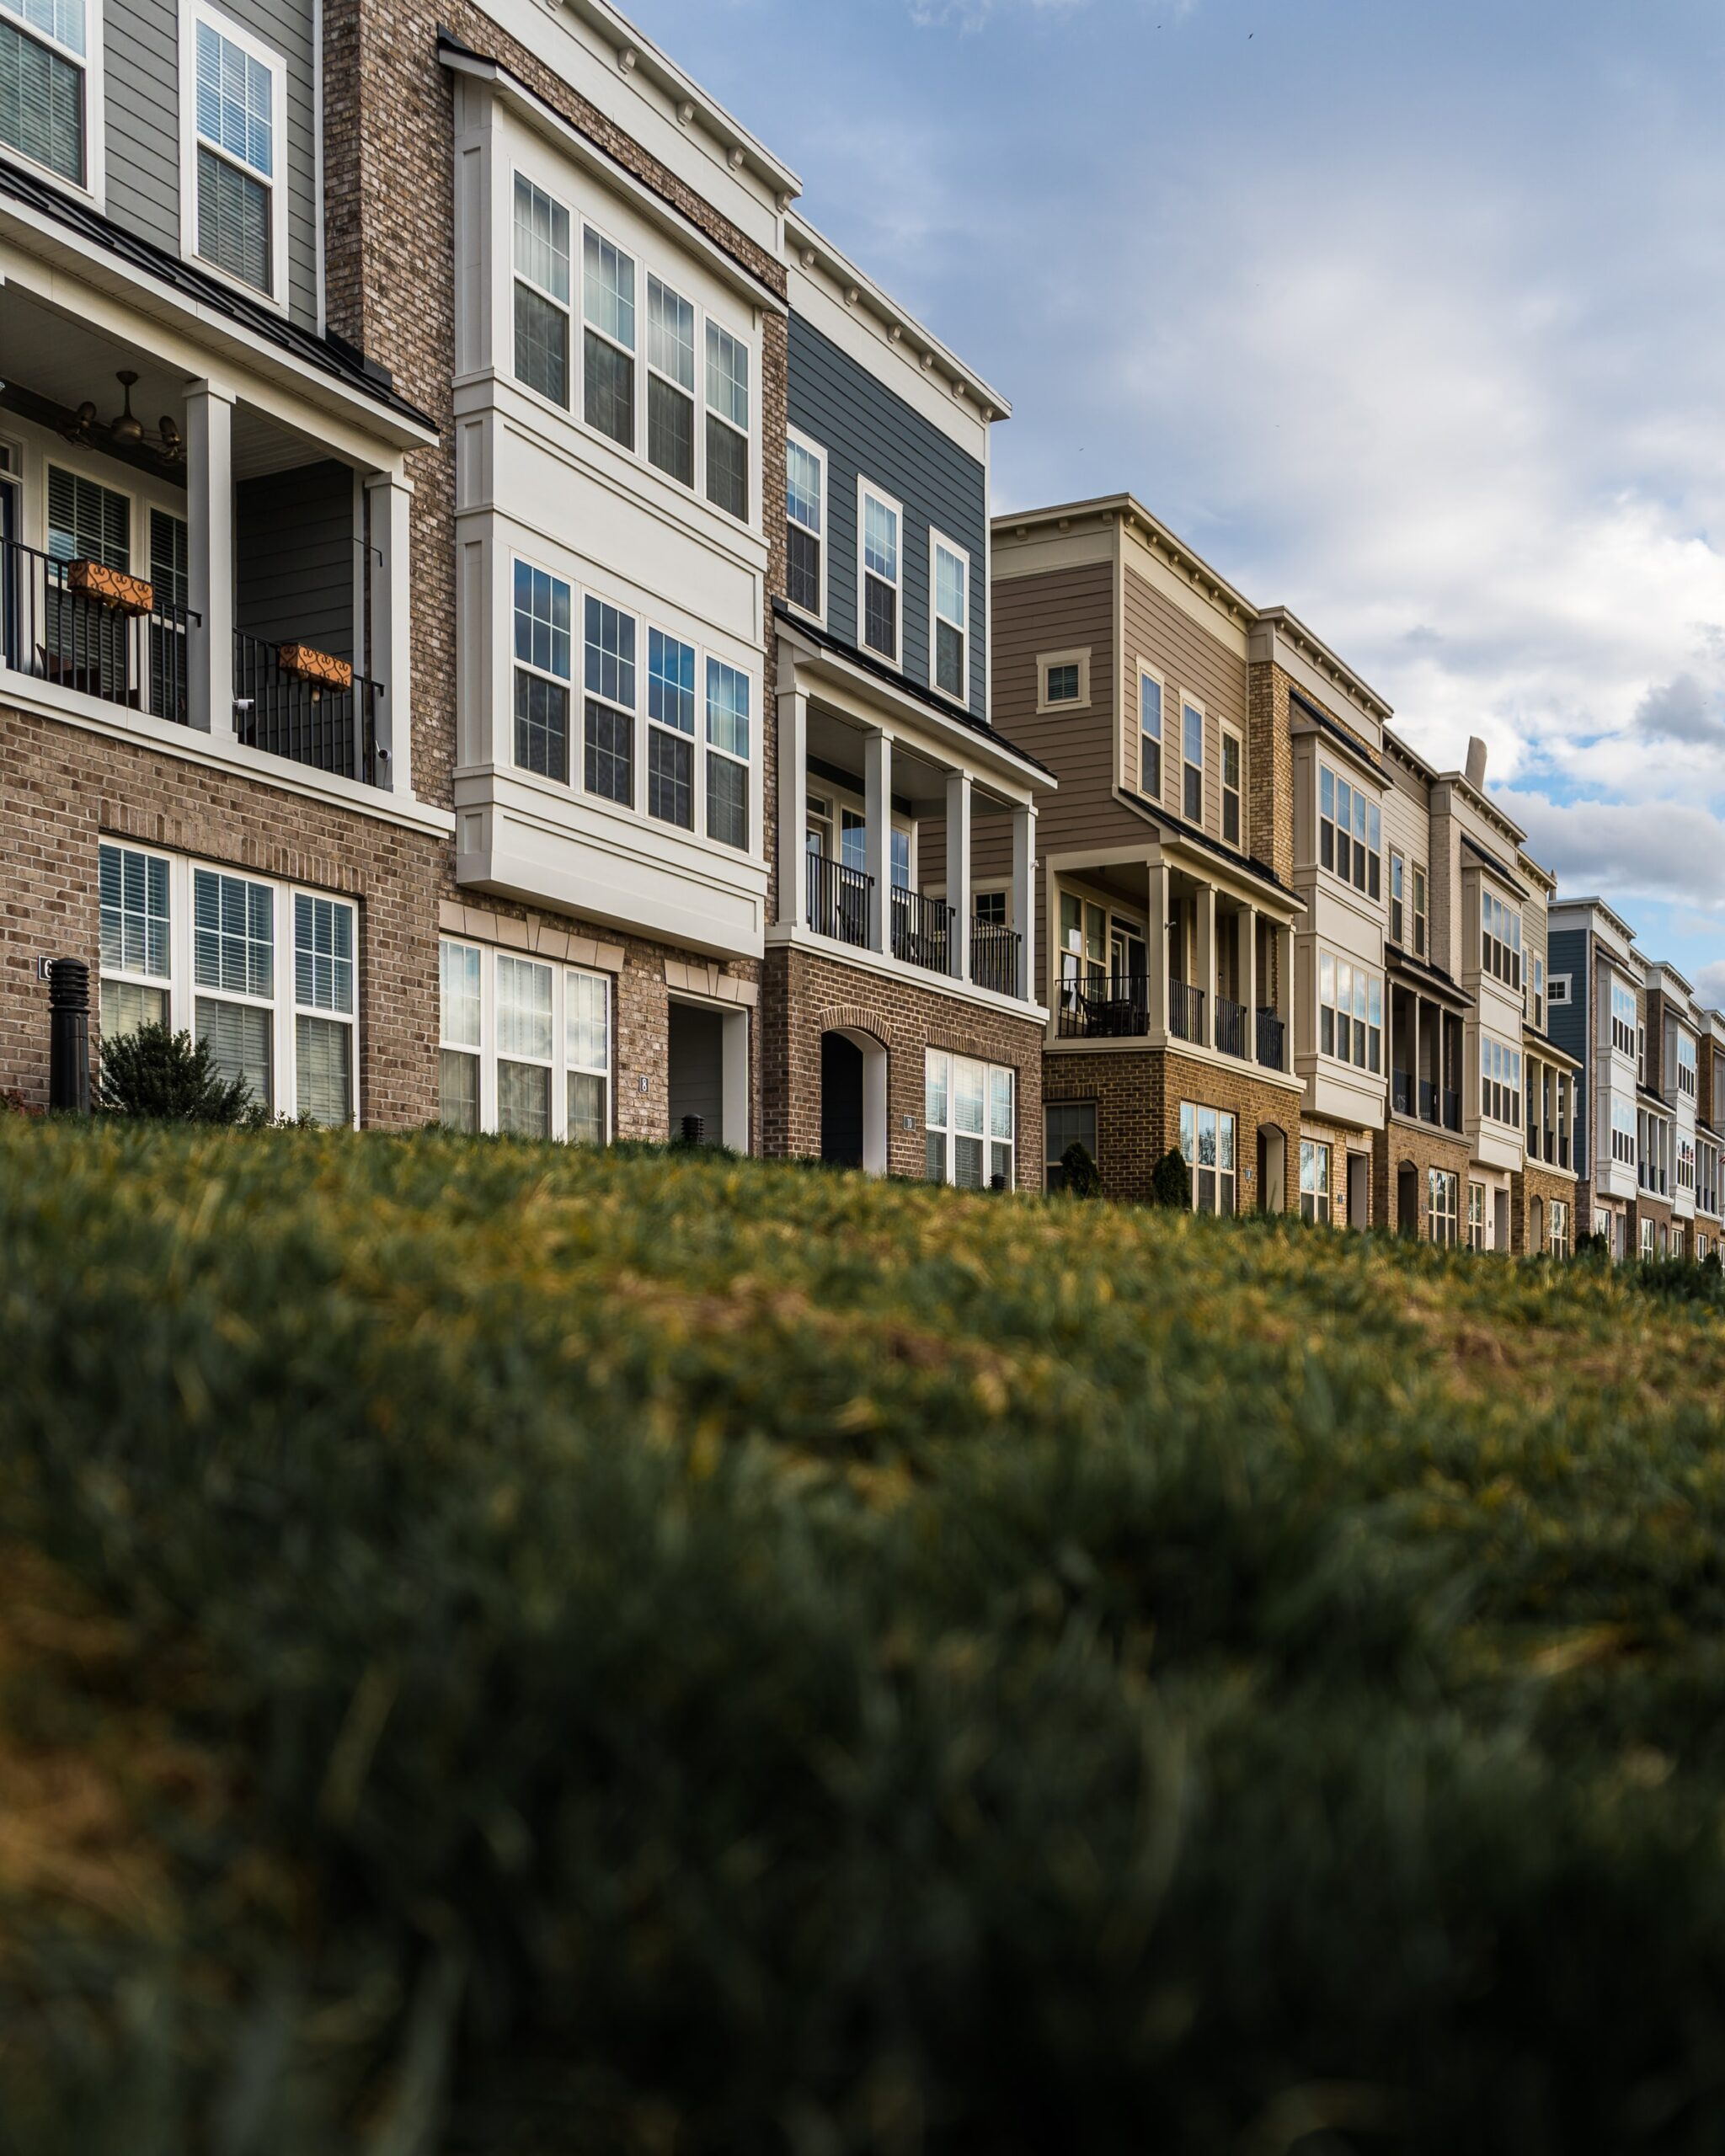 Photo of townhomes